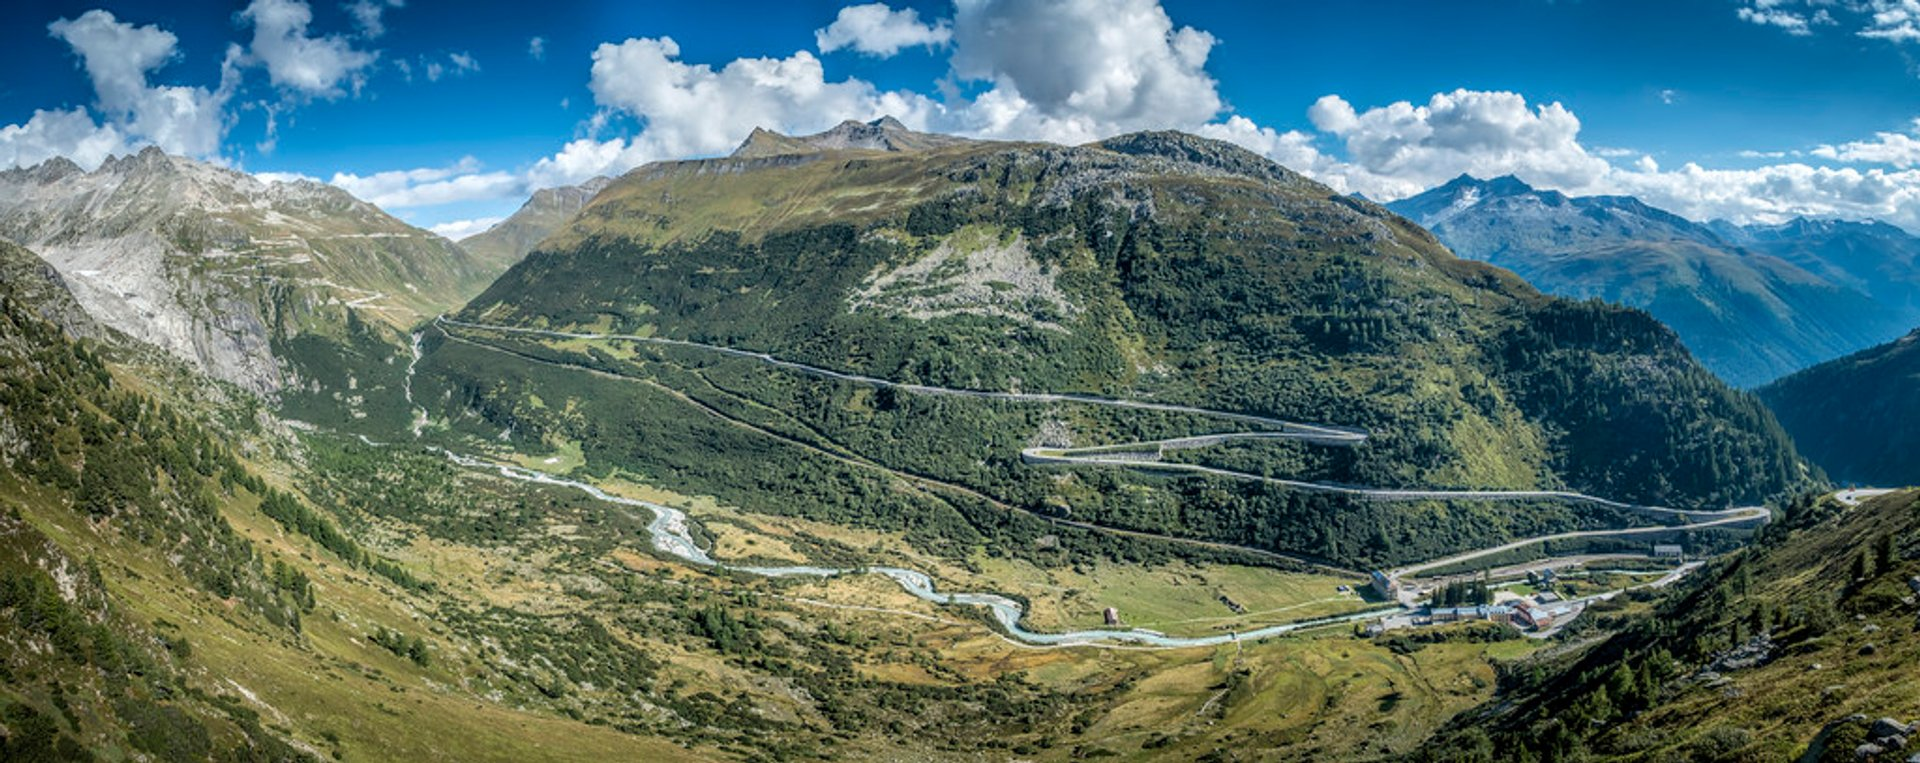 Driving over the Grimsel Pass, with the Furka Pass in the background 2019